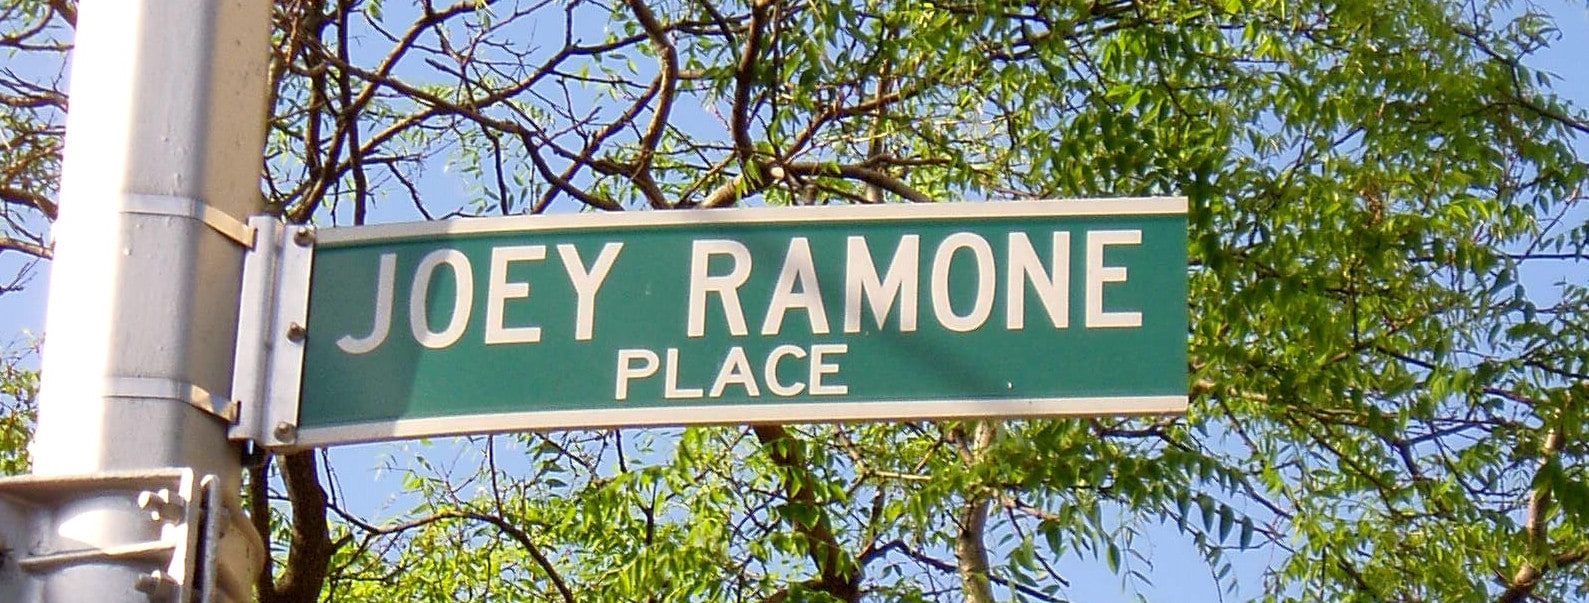 Joey_Ramone_Place_NYC_streetsign-min copy